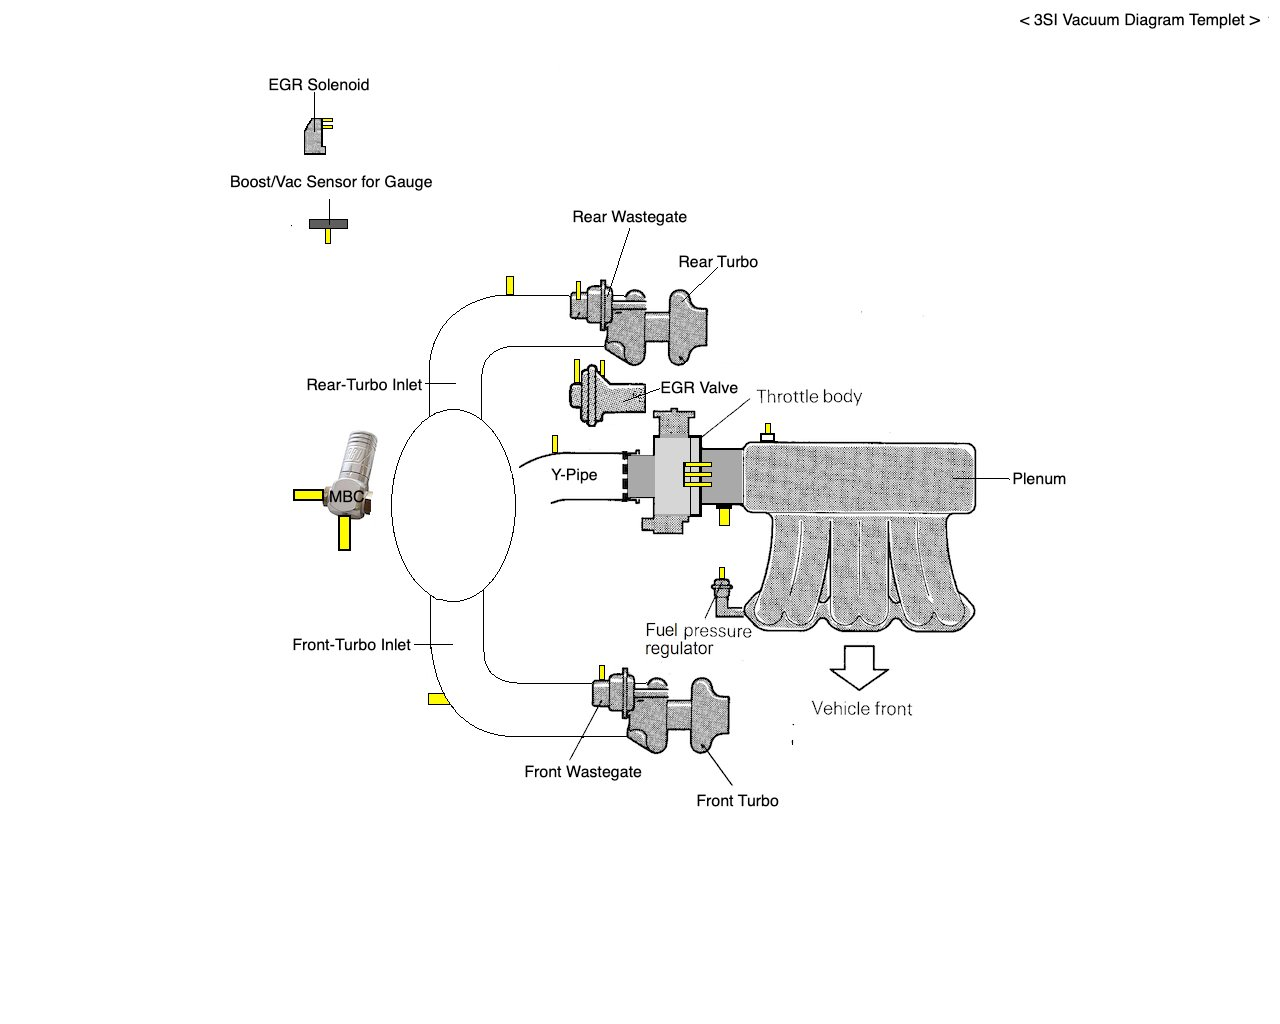 Vacuum Reduction w/ EGR Help - Diagram Inside | Mitsubishi ... on egr cooler diagram, ford solenoid diagram, warn solenoid diagram, egr solenoid circuit, egr solenoid test, egr solenoid function, ford egr diagram, evap solenoid diagram, egr valve diagram, solenoid valve diagram, 89 f 350 egr diagram, egr wiring diagram, egr solenoid 1987, turbo solenoid diagram, egr system diagram,